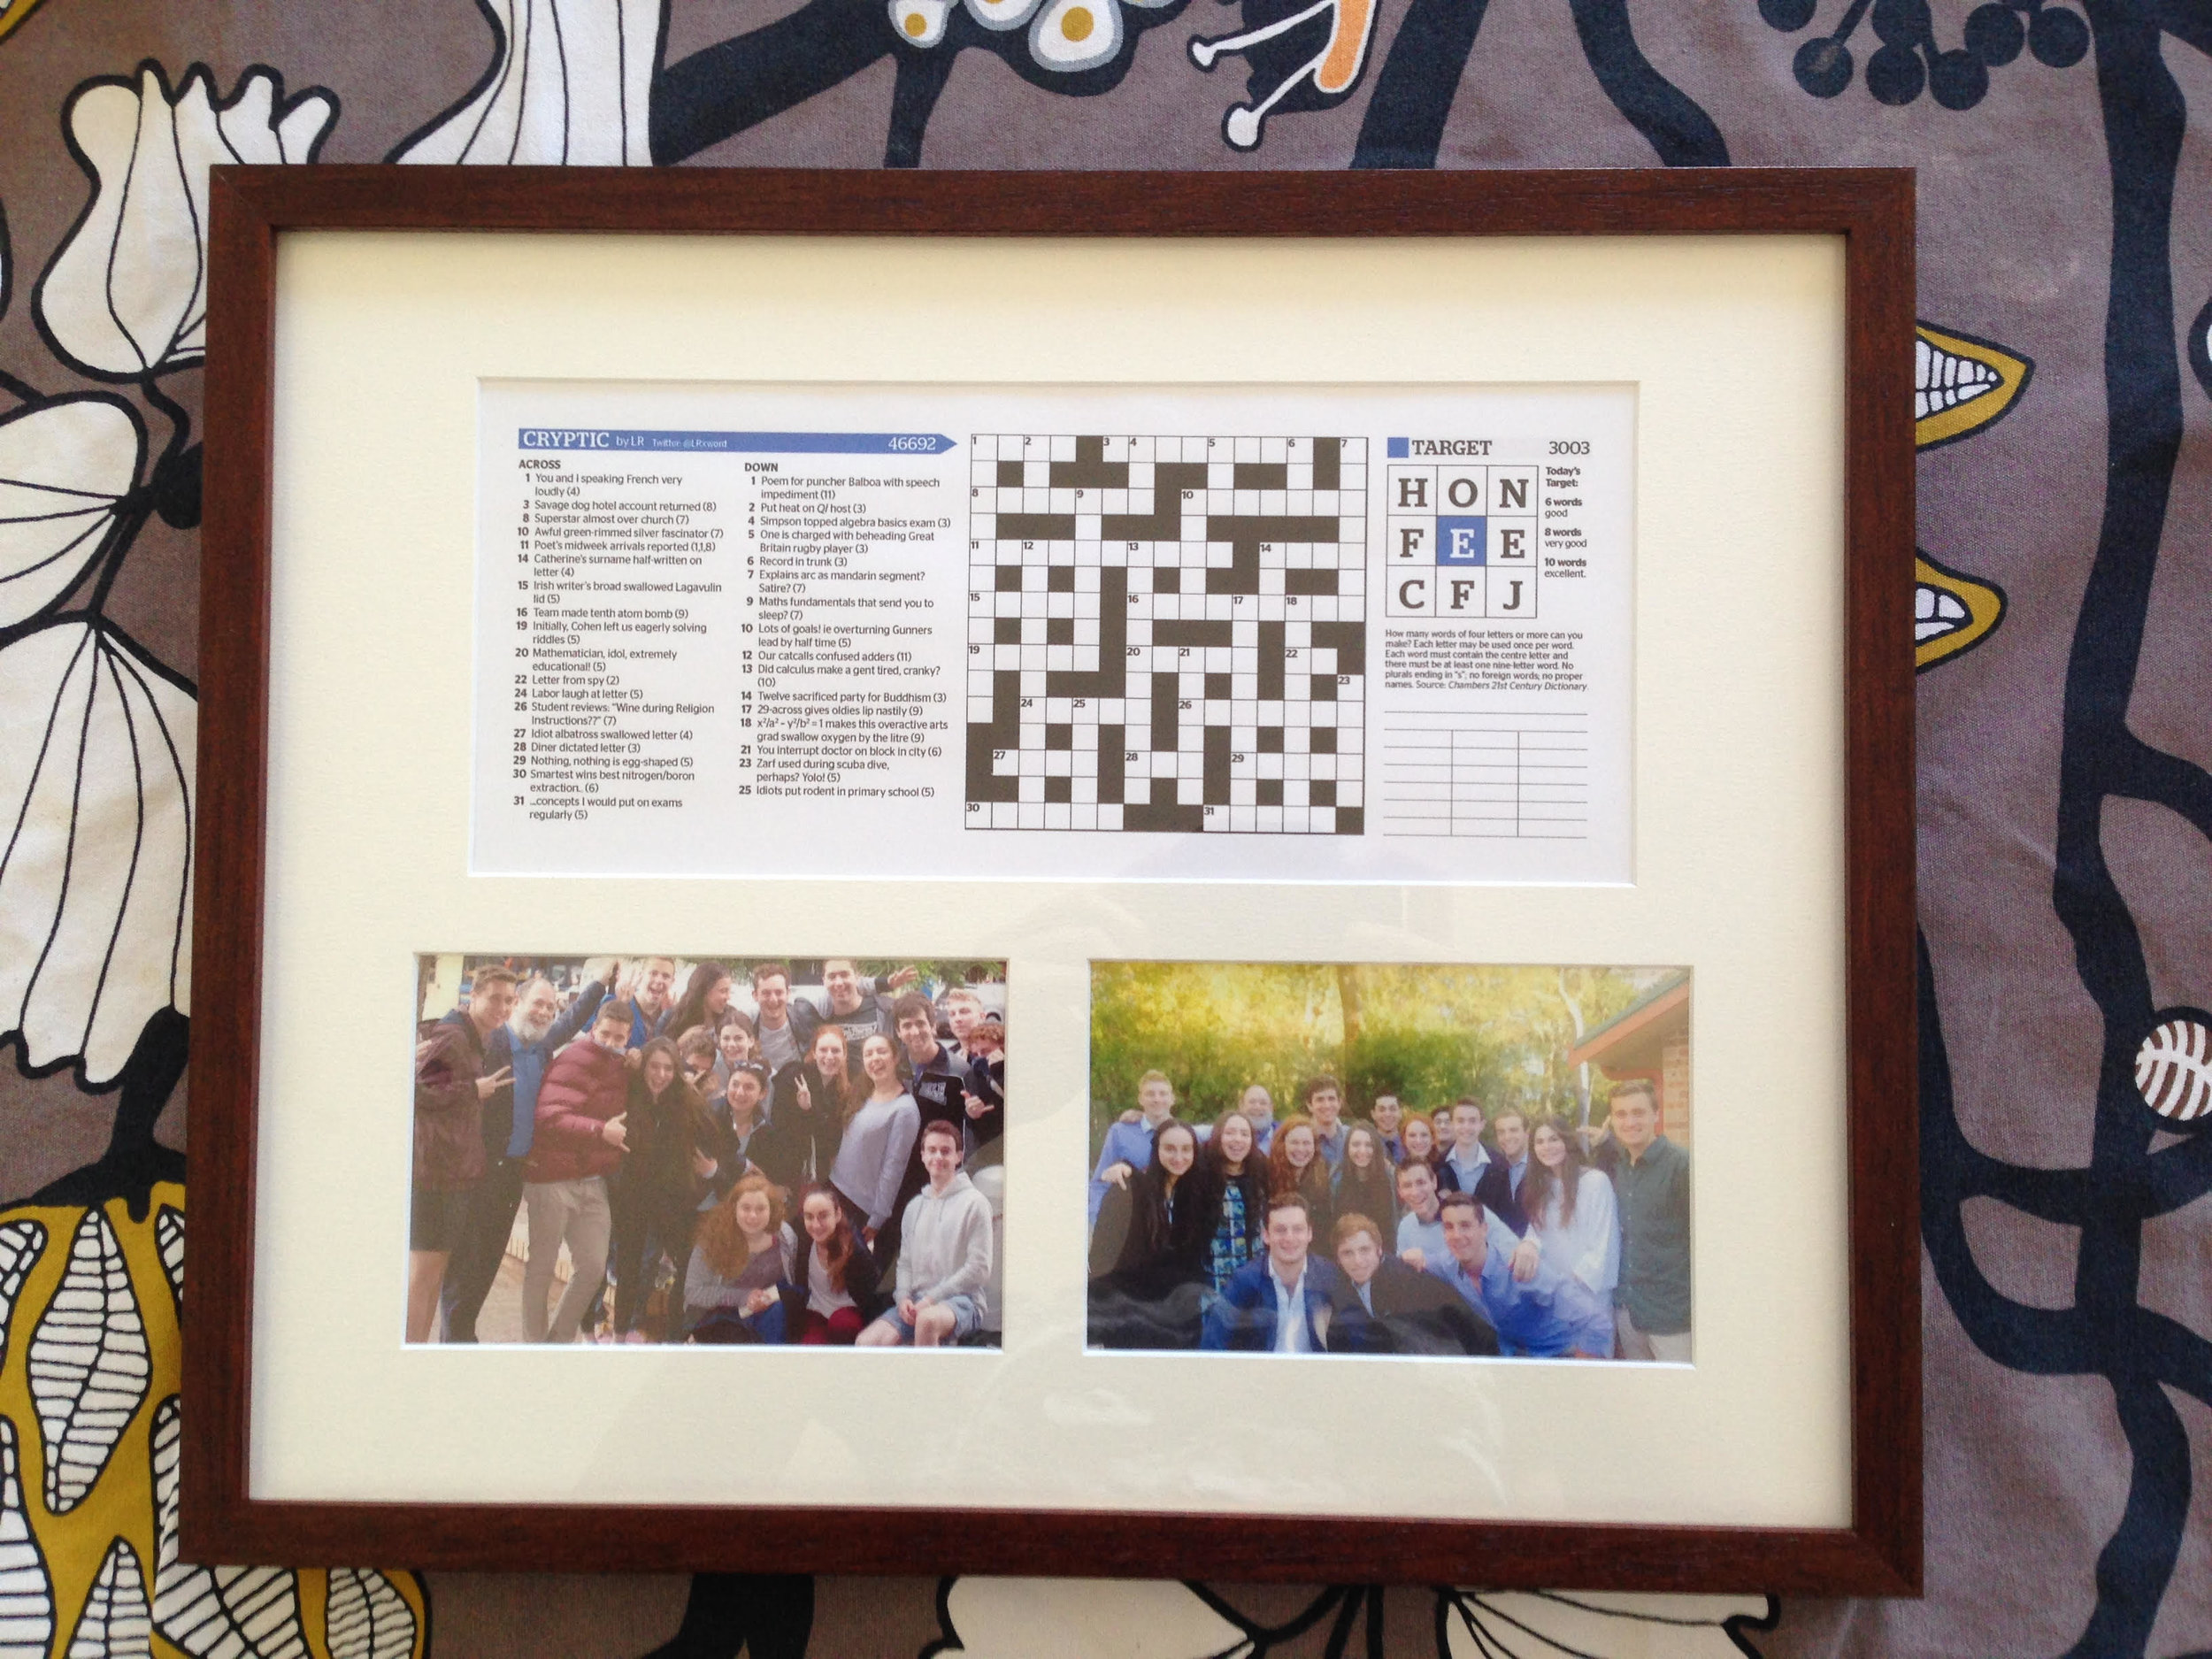 The giver of this puzzle got it framed and added photos - a nice touch!